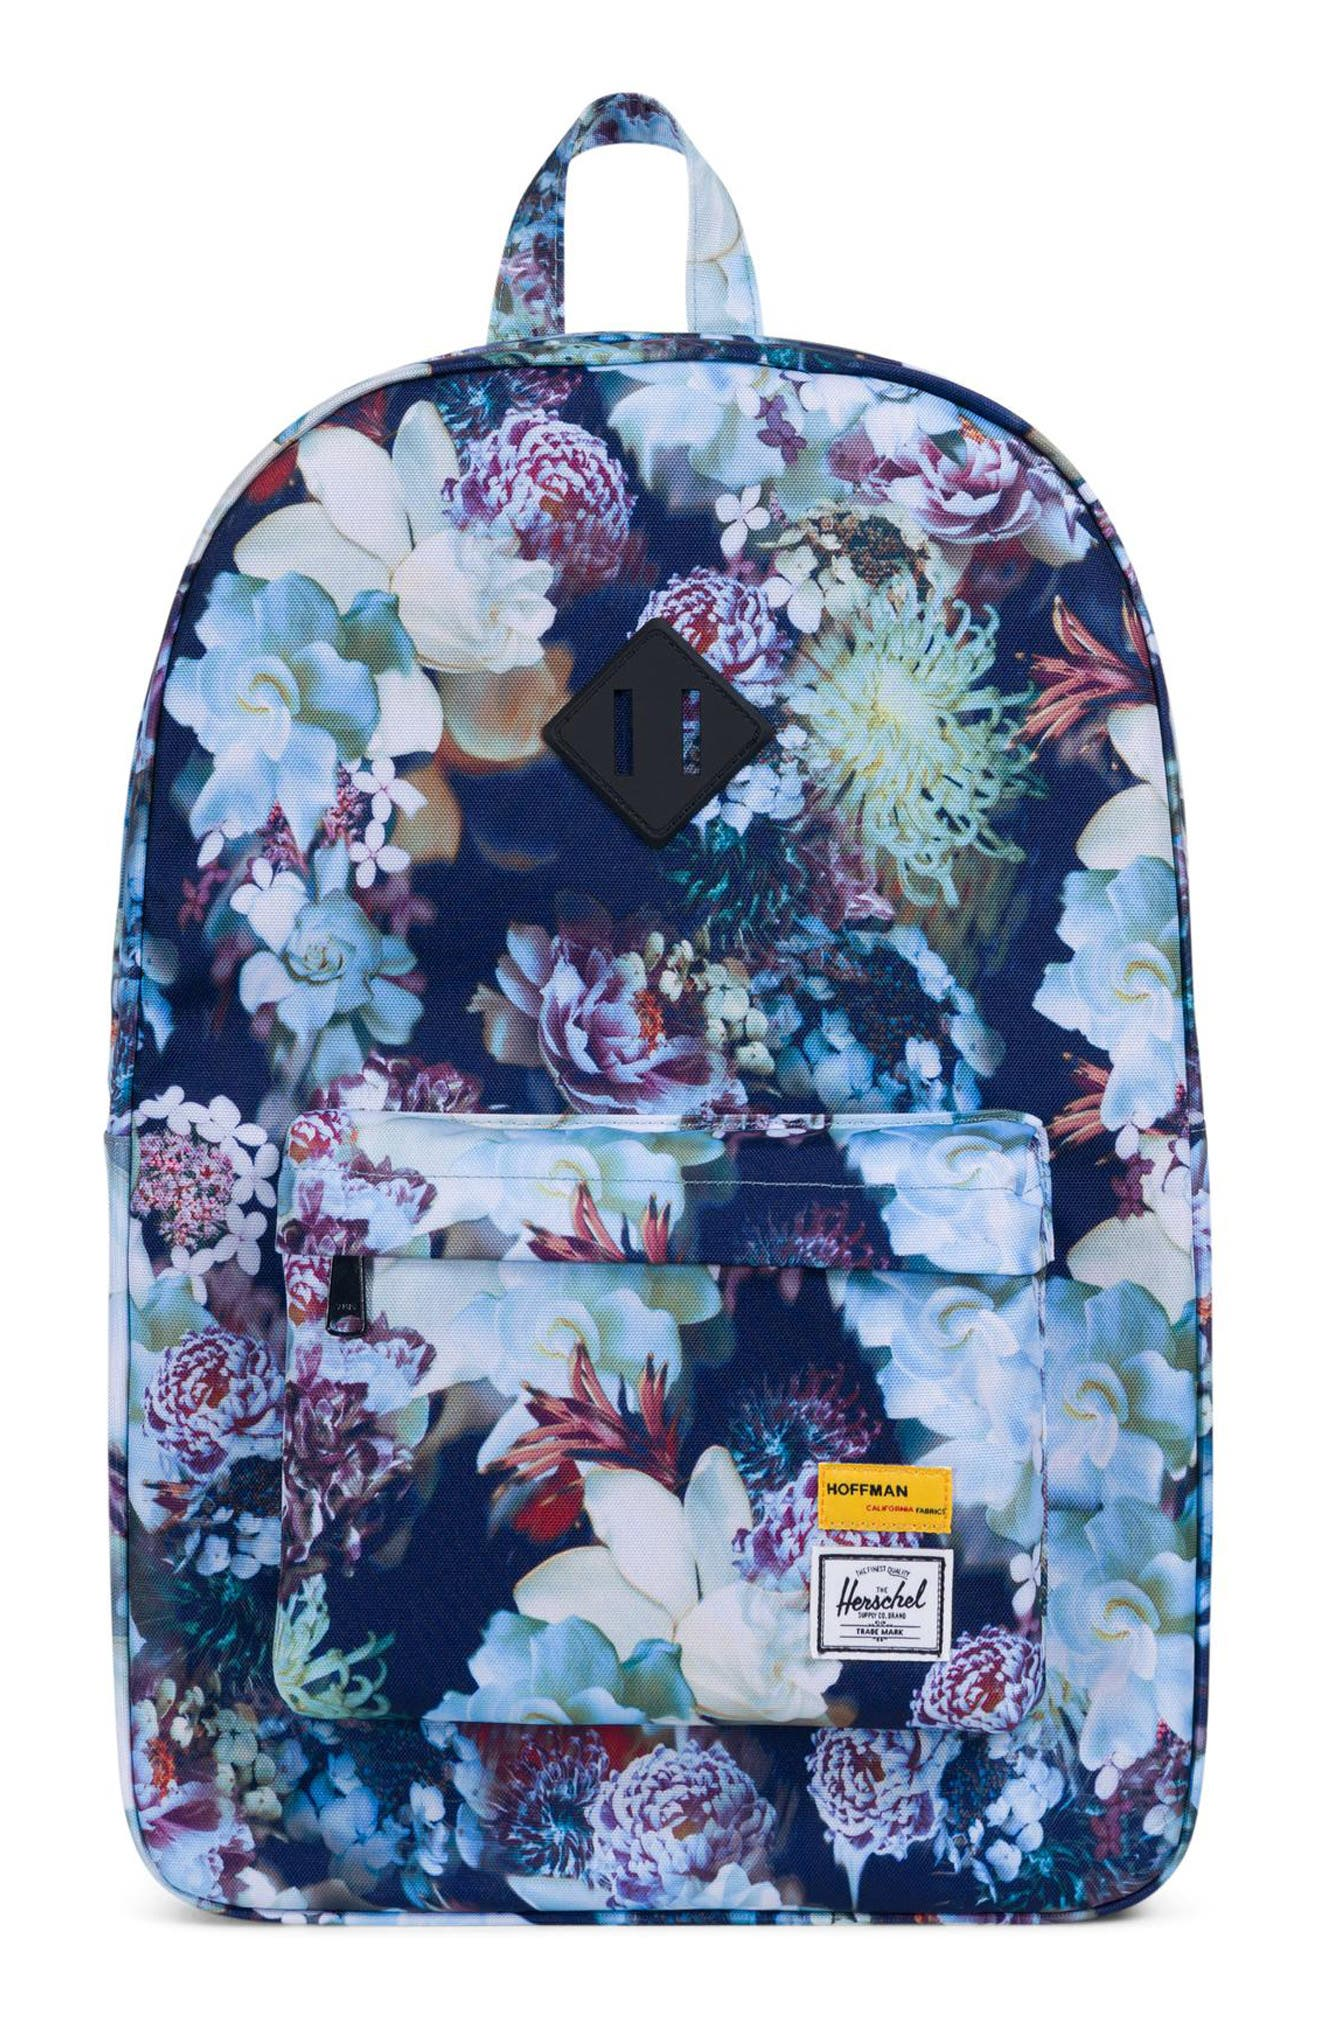 Heritage Hoffman Backpack,                         Main,                         color, WINTER FLORAL